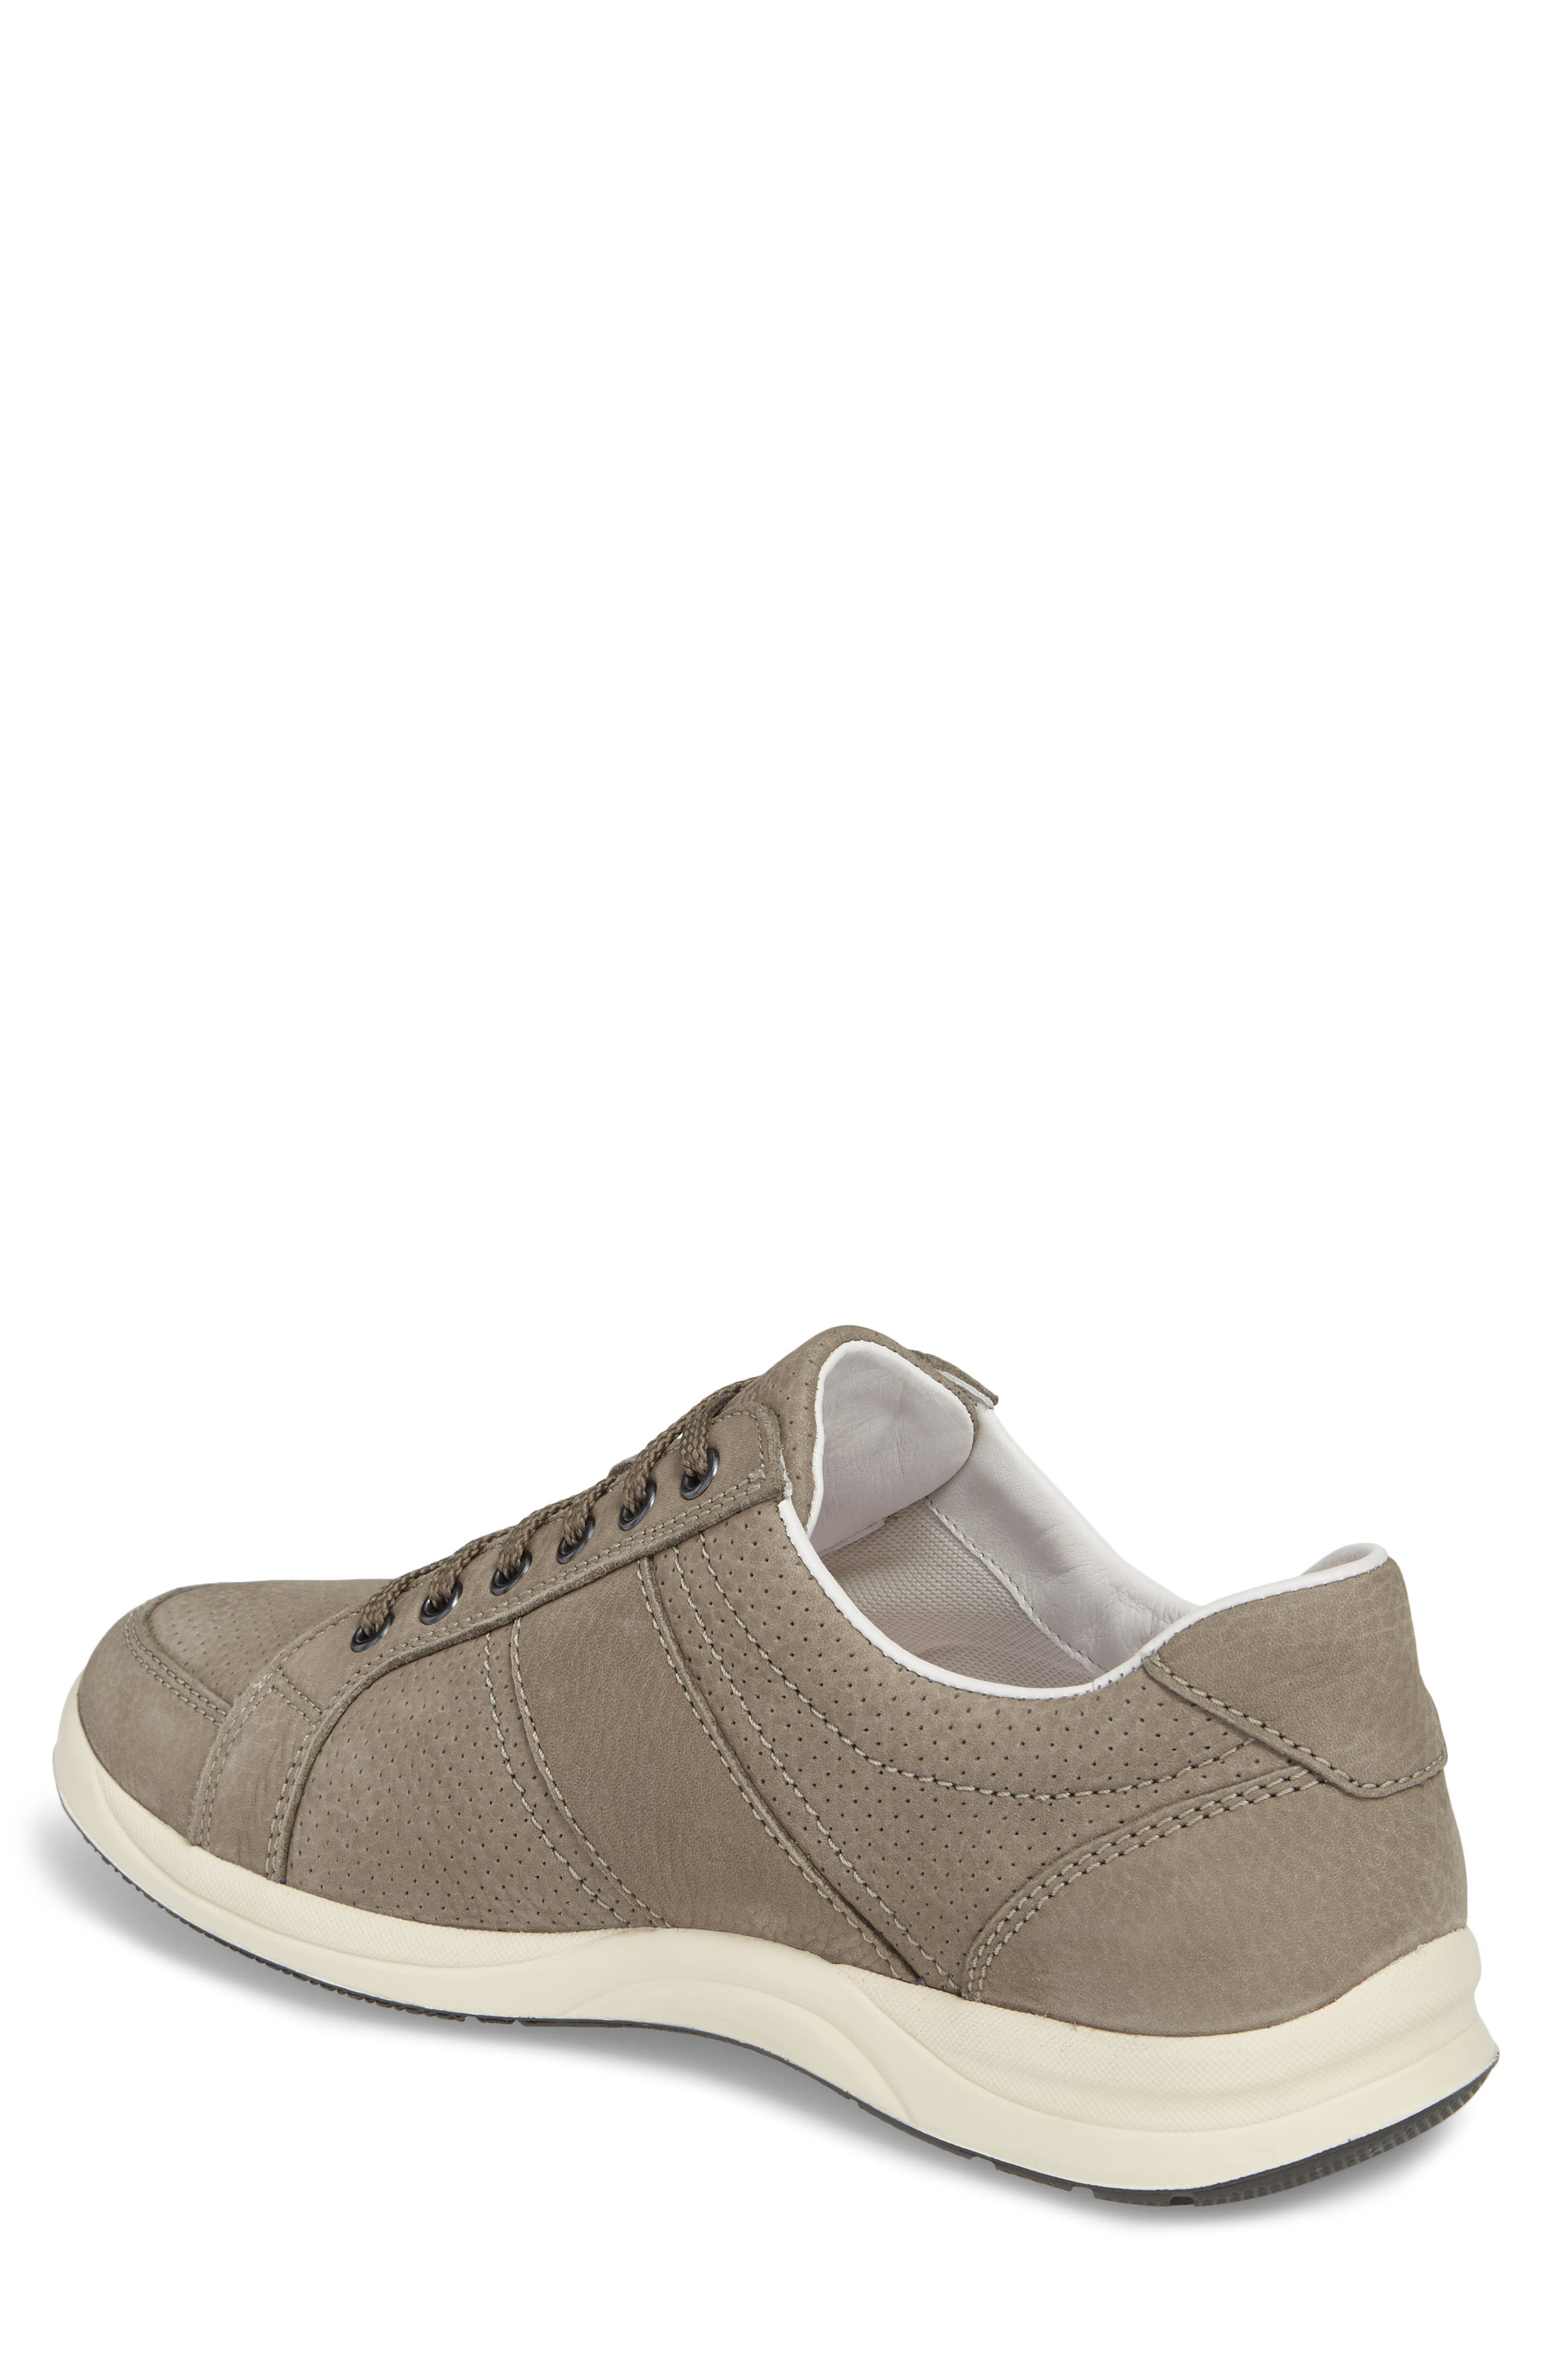 20725492515 All Men s Mephisto Shoes  Sale